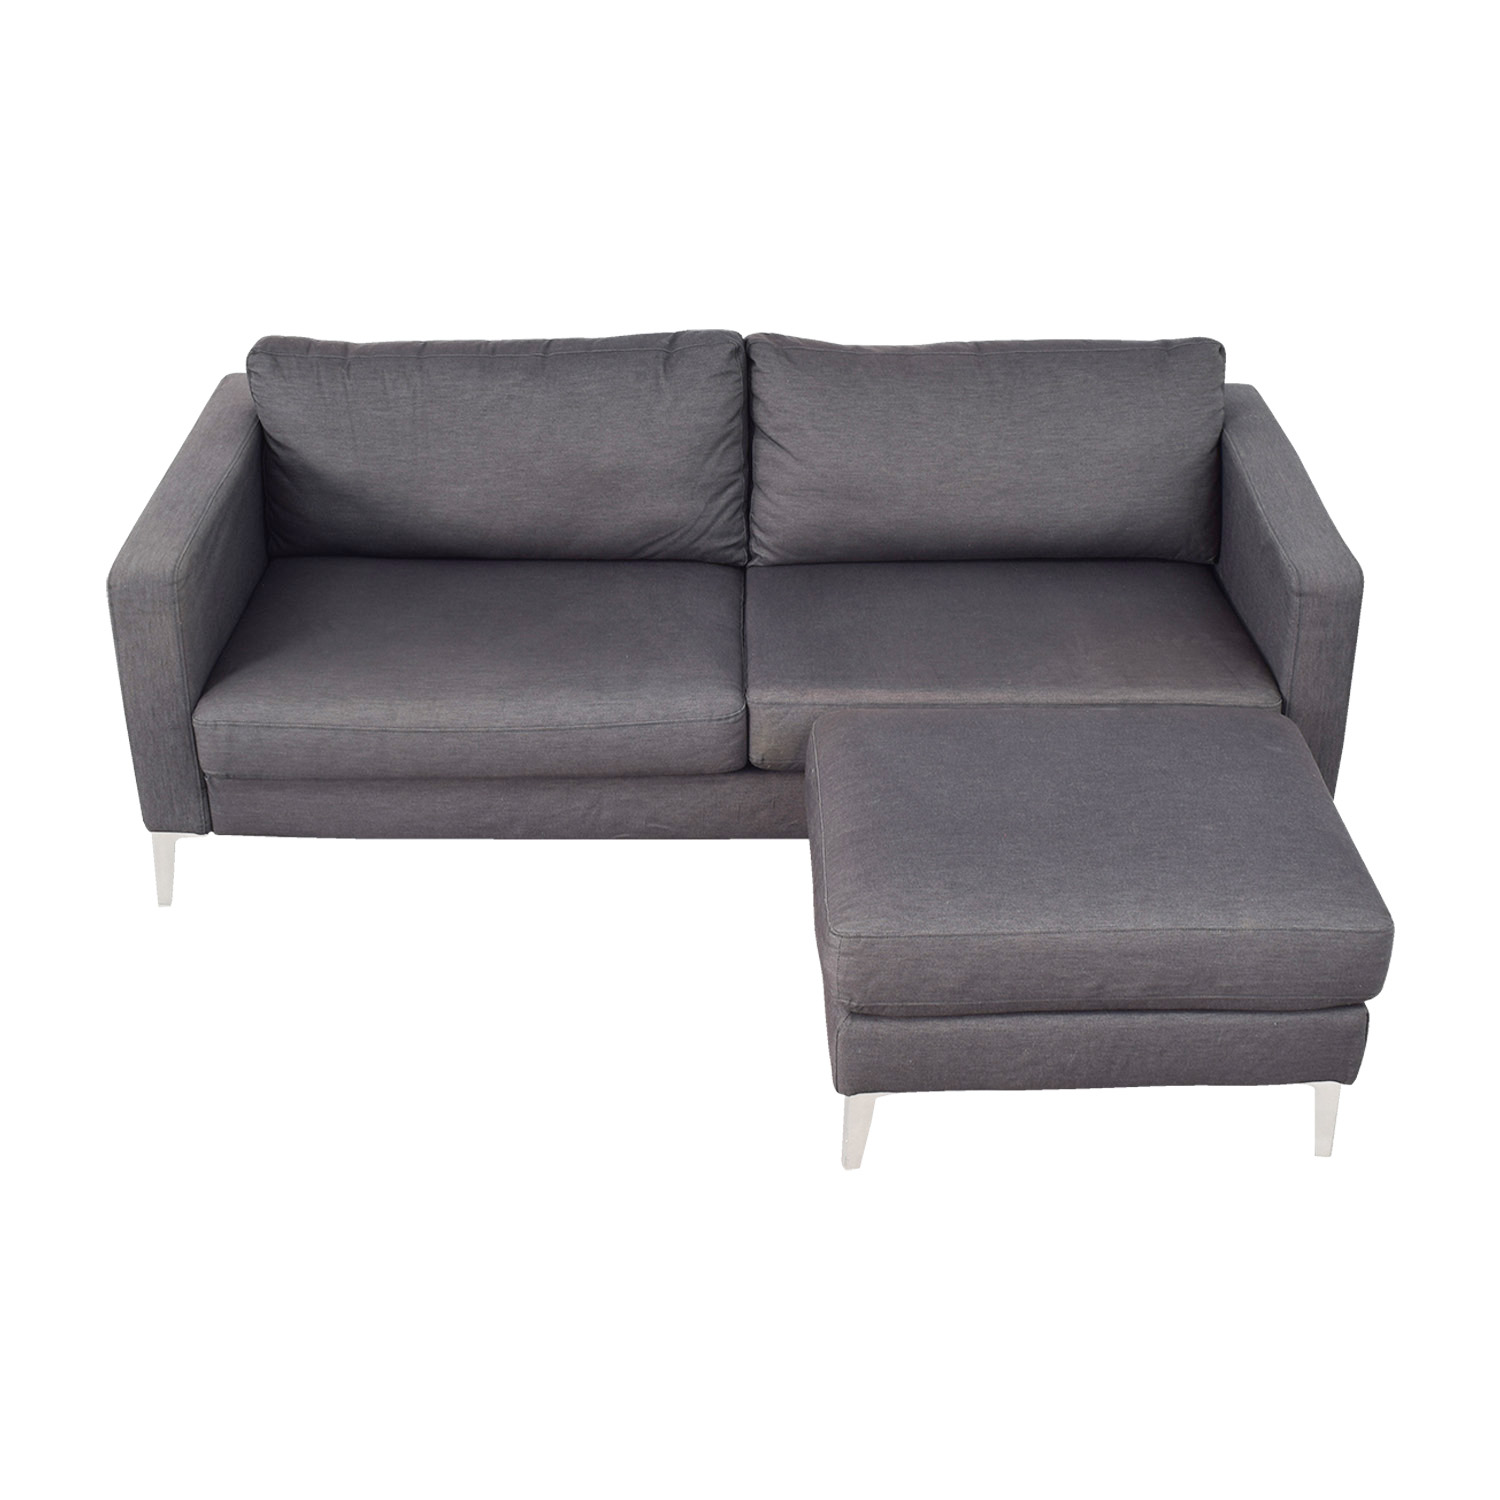 IKEA Karlstad Grey Couch and Ottoman / Sofas